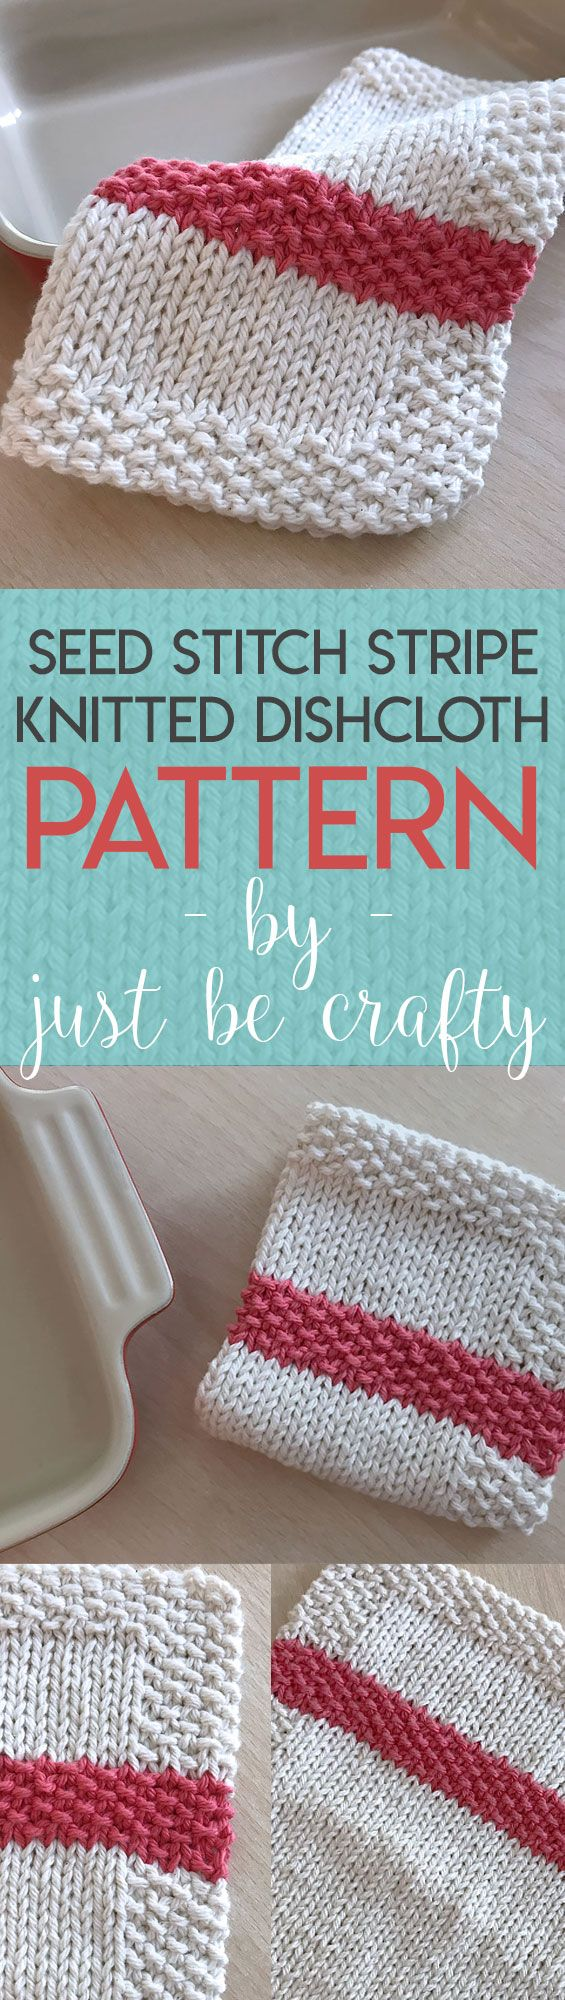 Seed Stitch Stripe Dishcloth Pattern | Seed stitch, Knitting ...